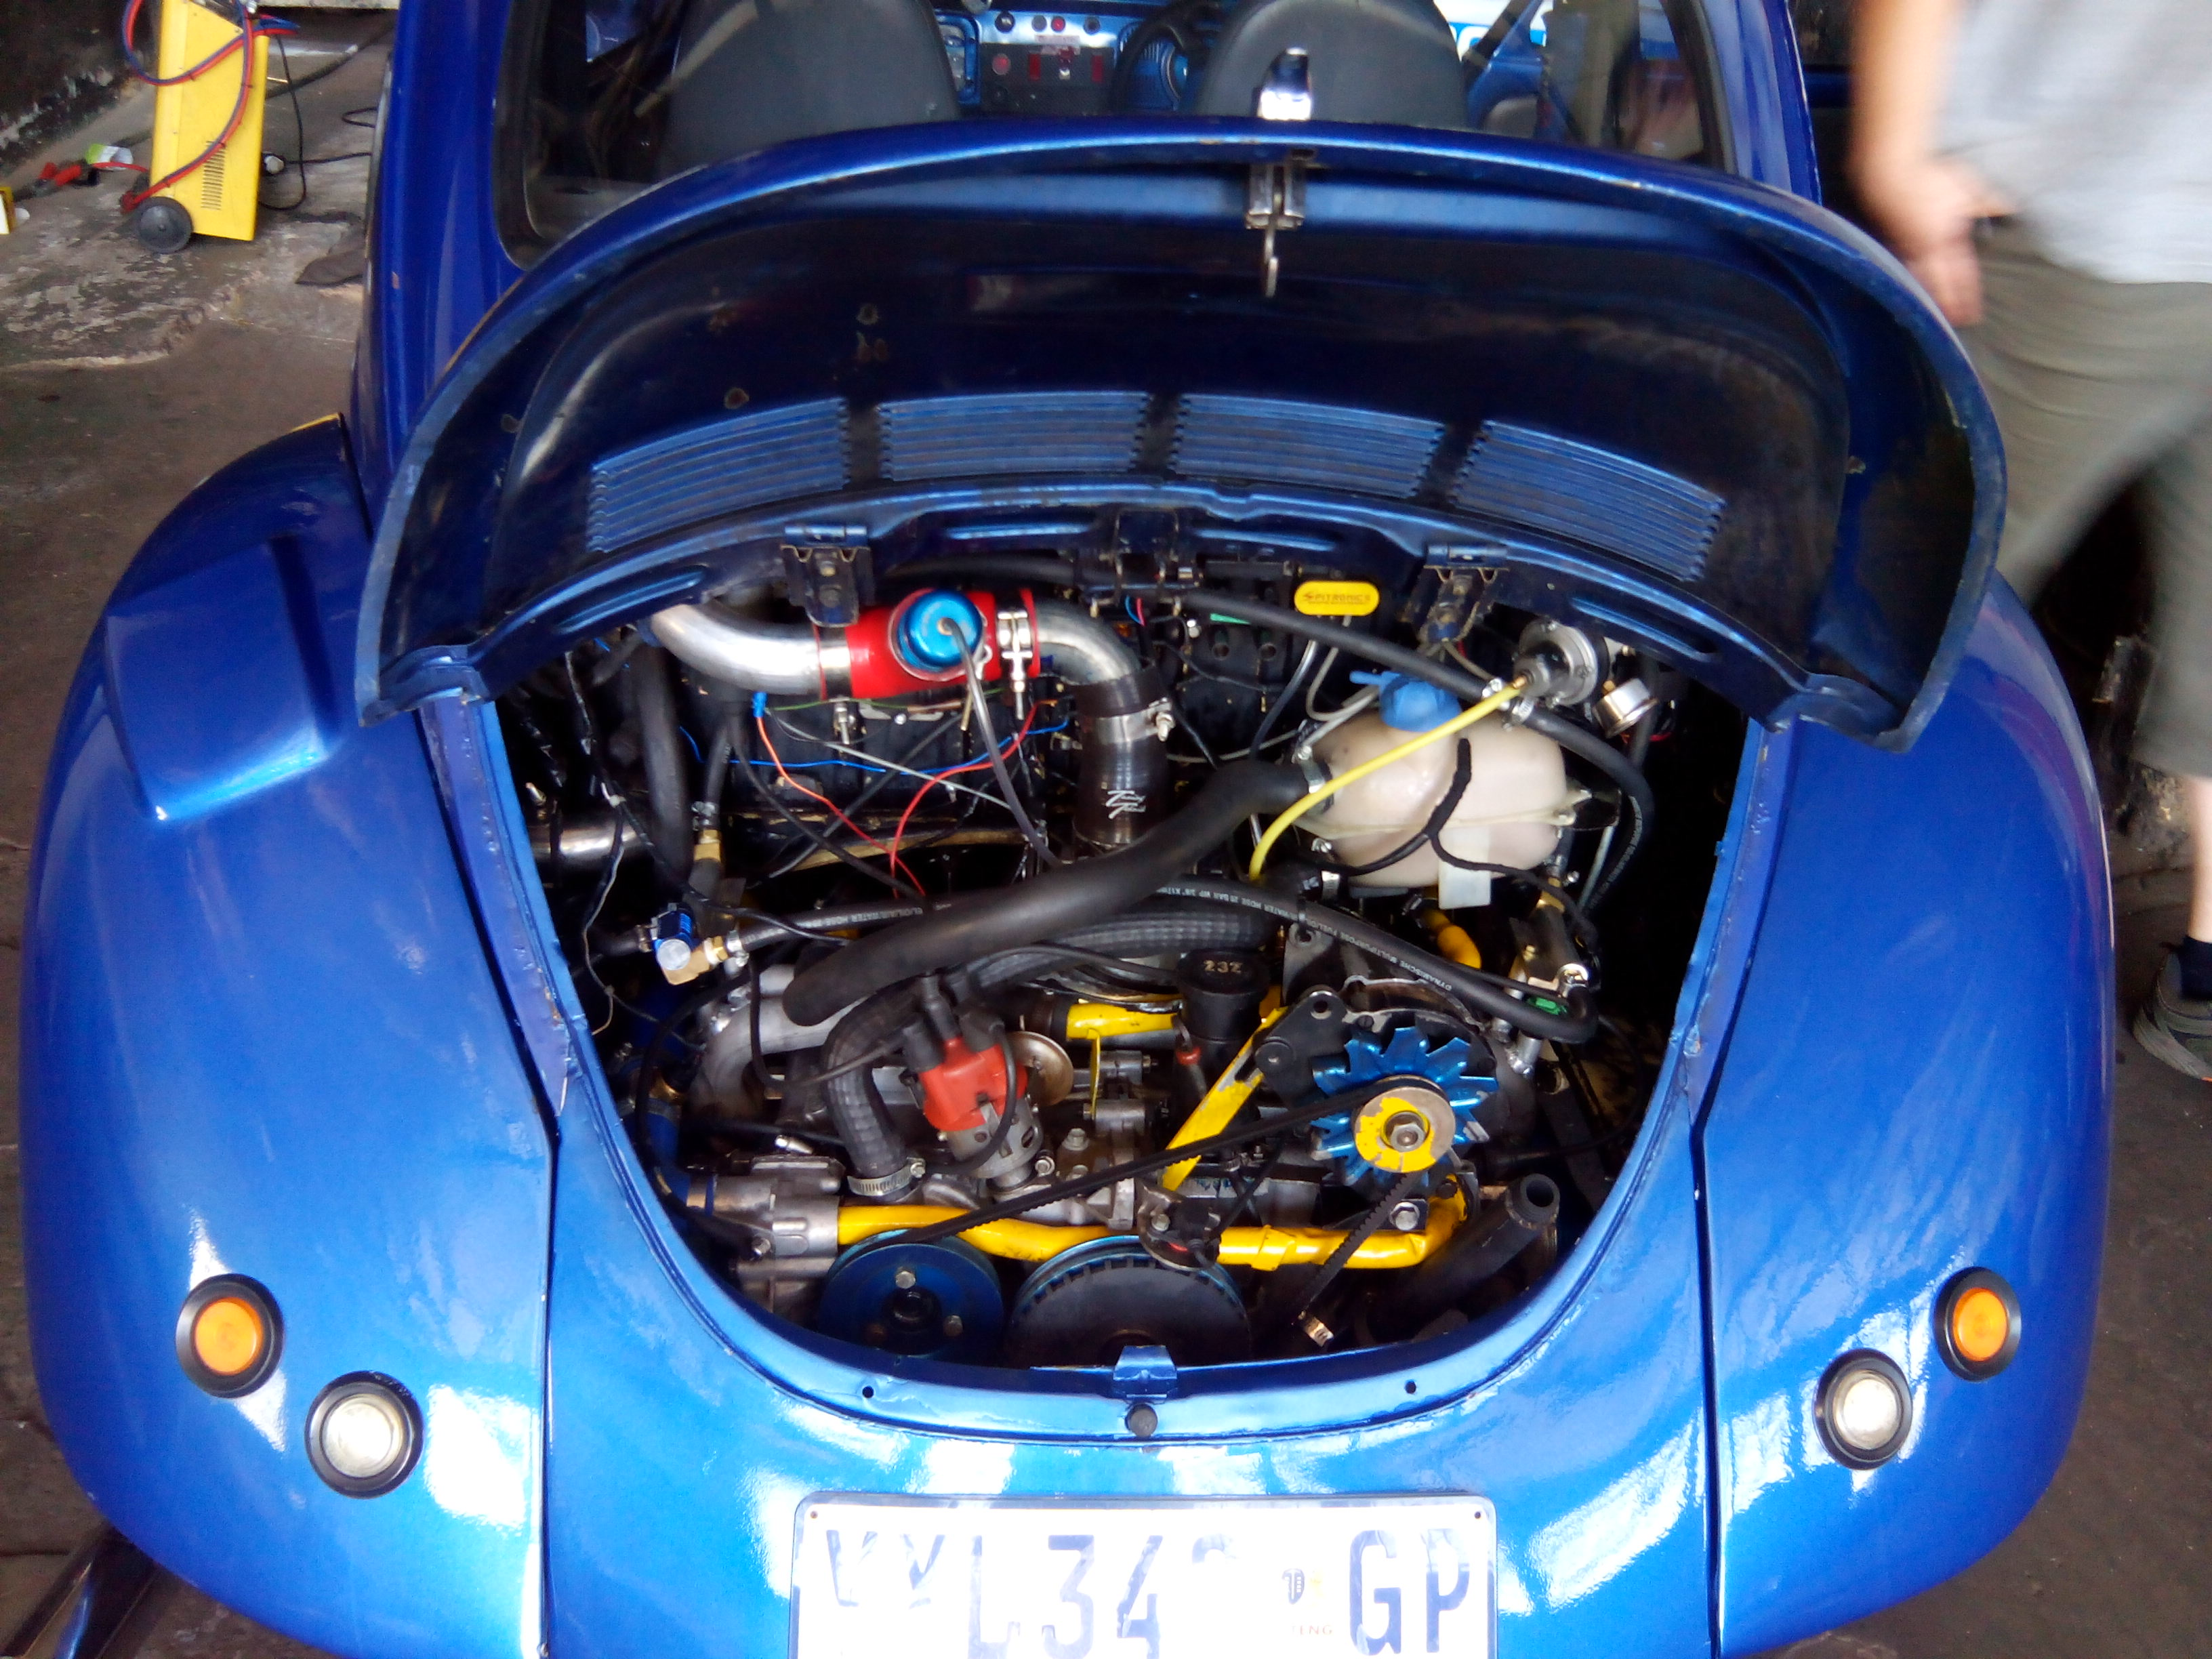 Vw Beetle 2 0 Fuel Injected Turbo Engine   Engine Conversions